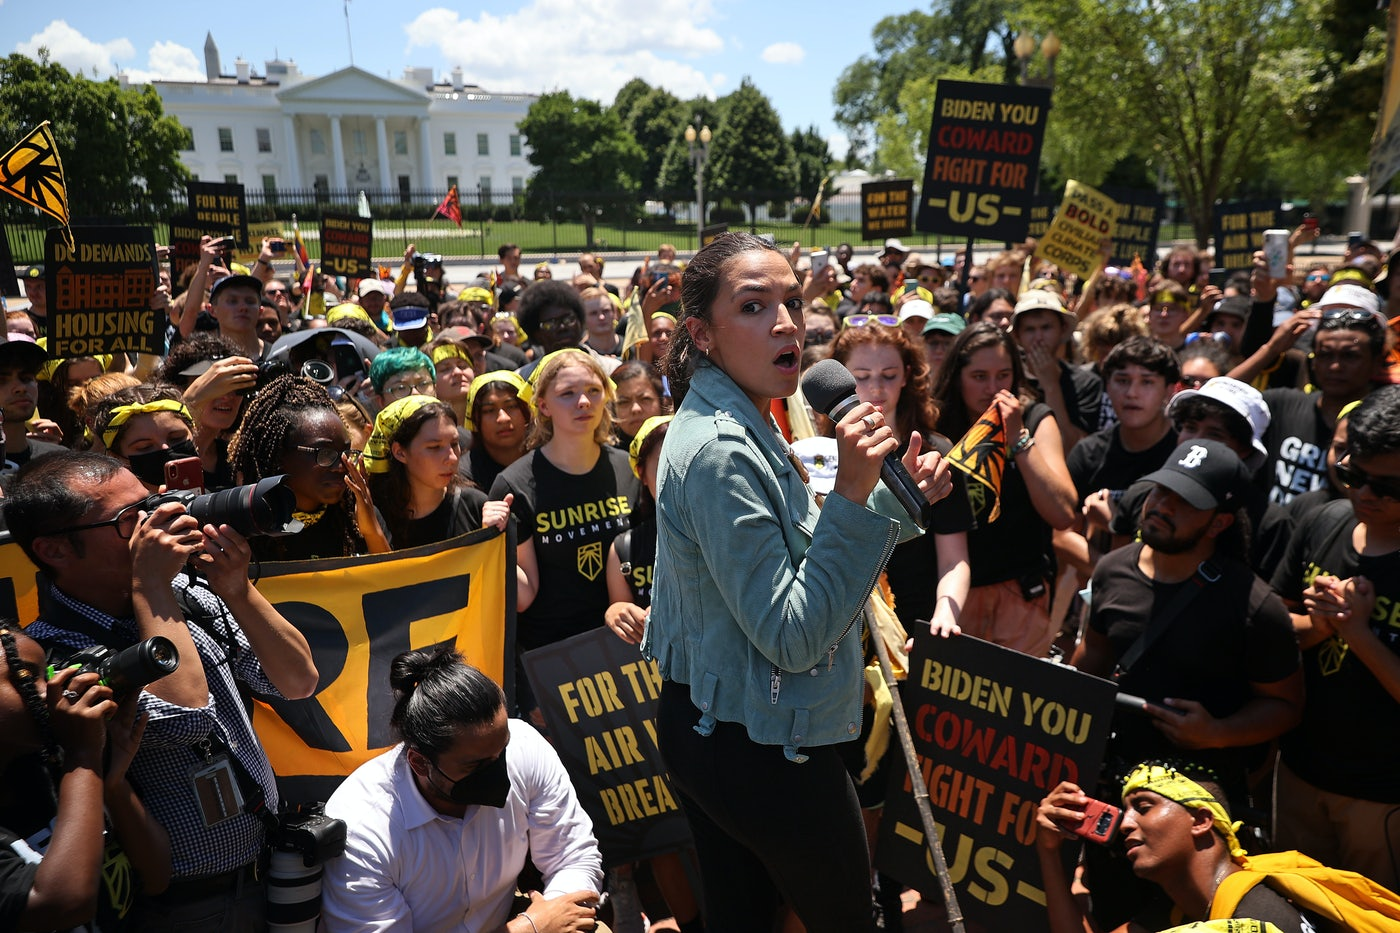 Alexandria Ocasio-Cortez holds a microphone, surrounded by activists.